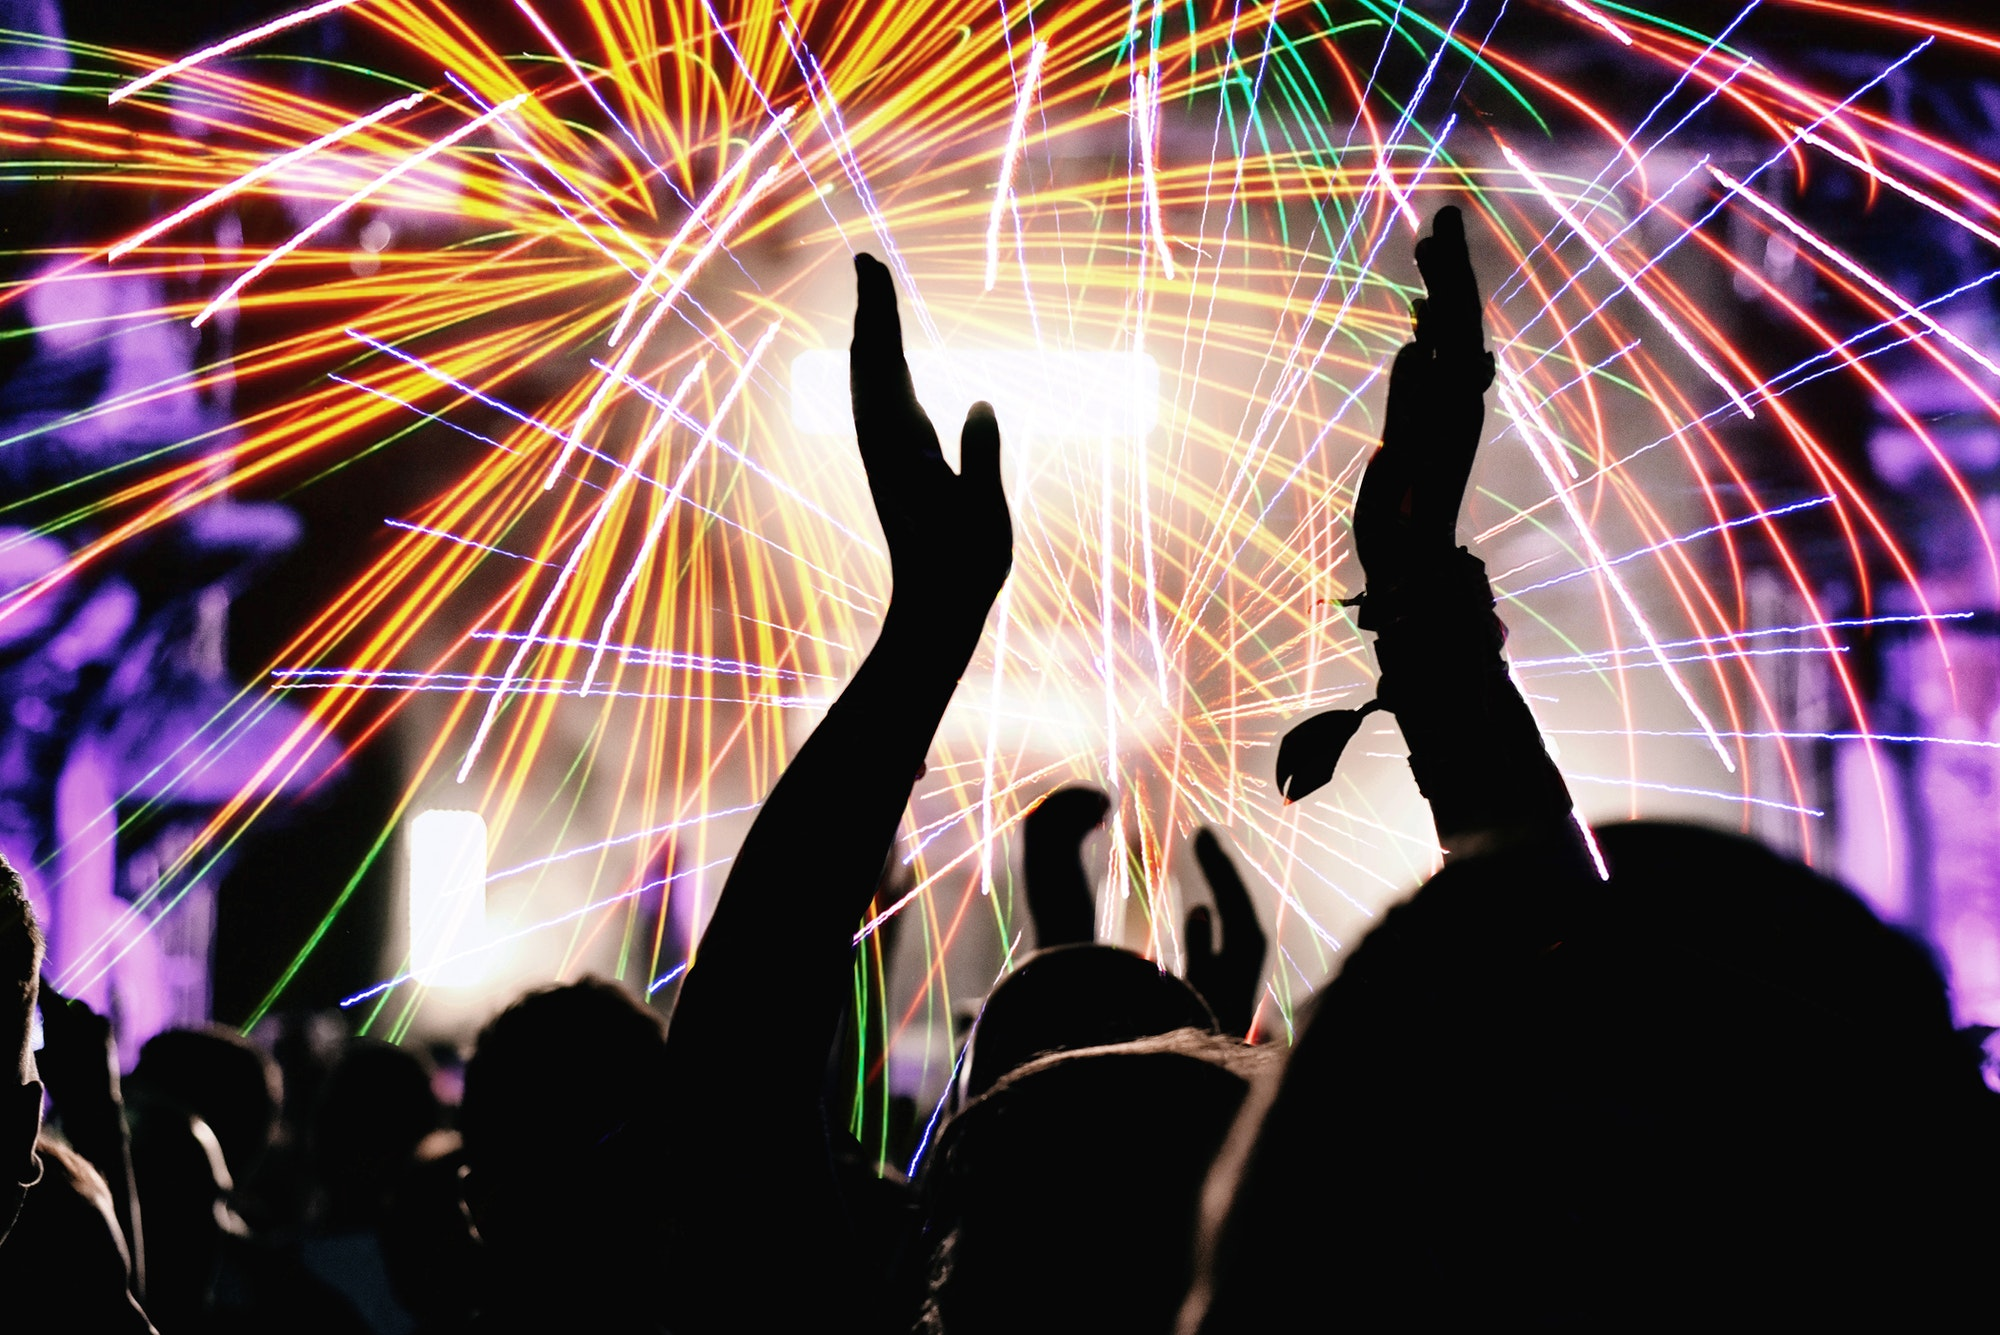 Cheering crowd and fireworks at New Year's Eve party